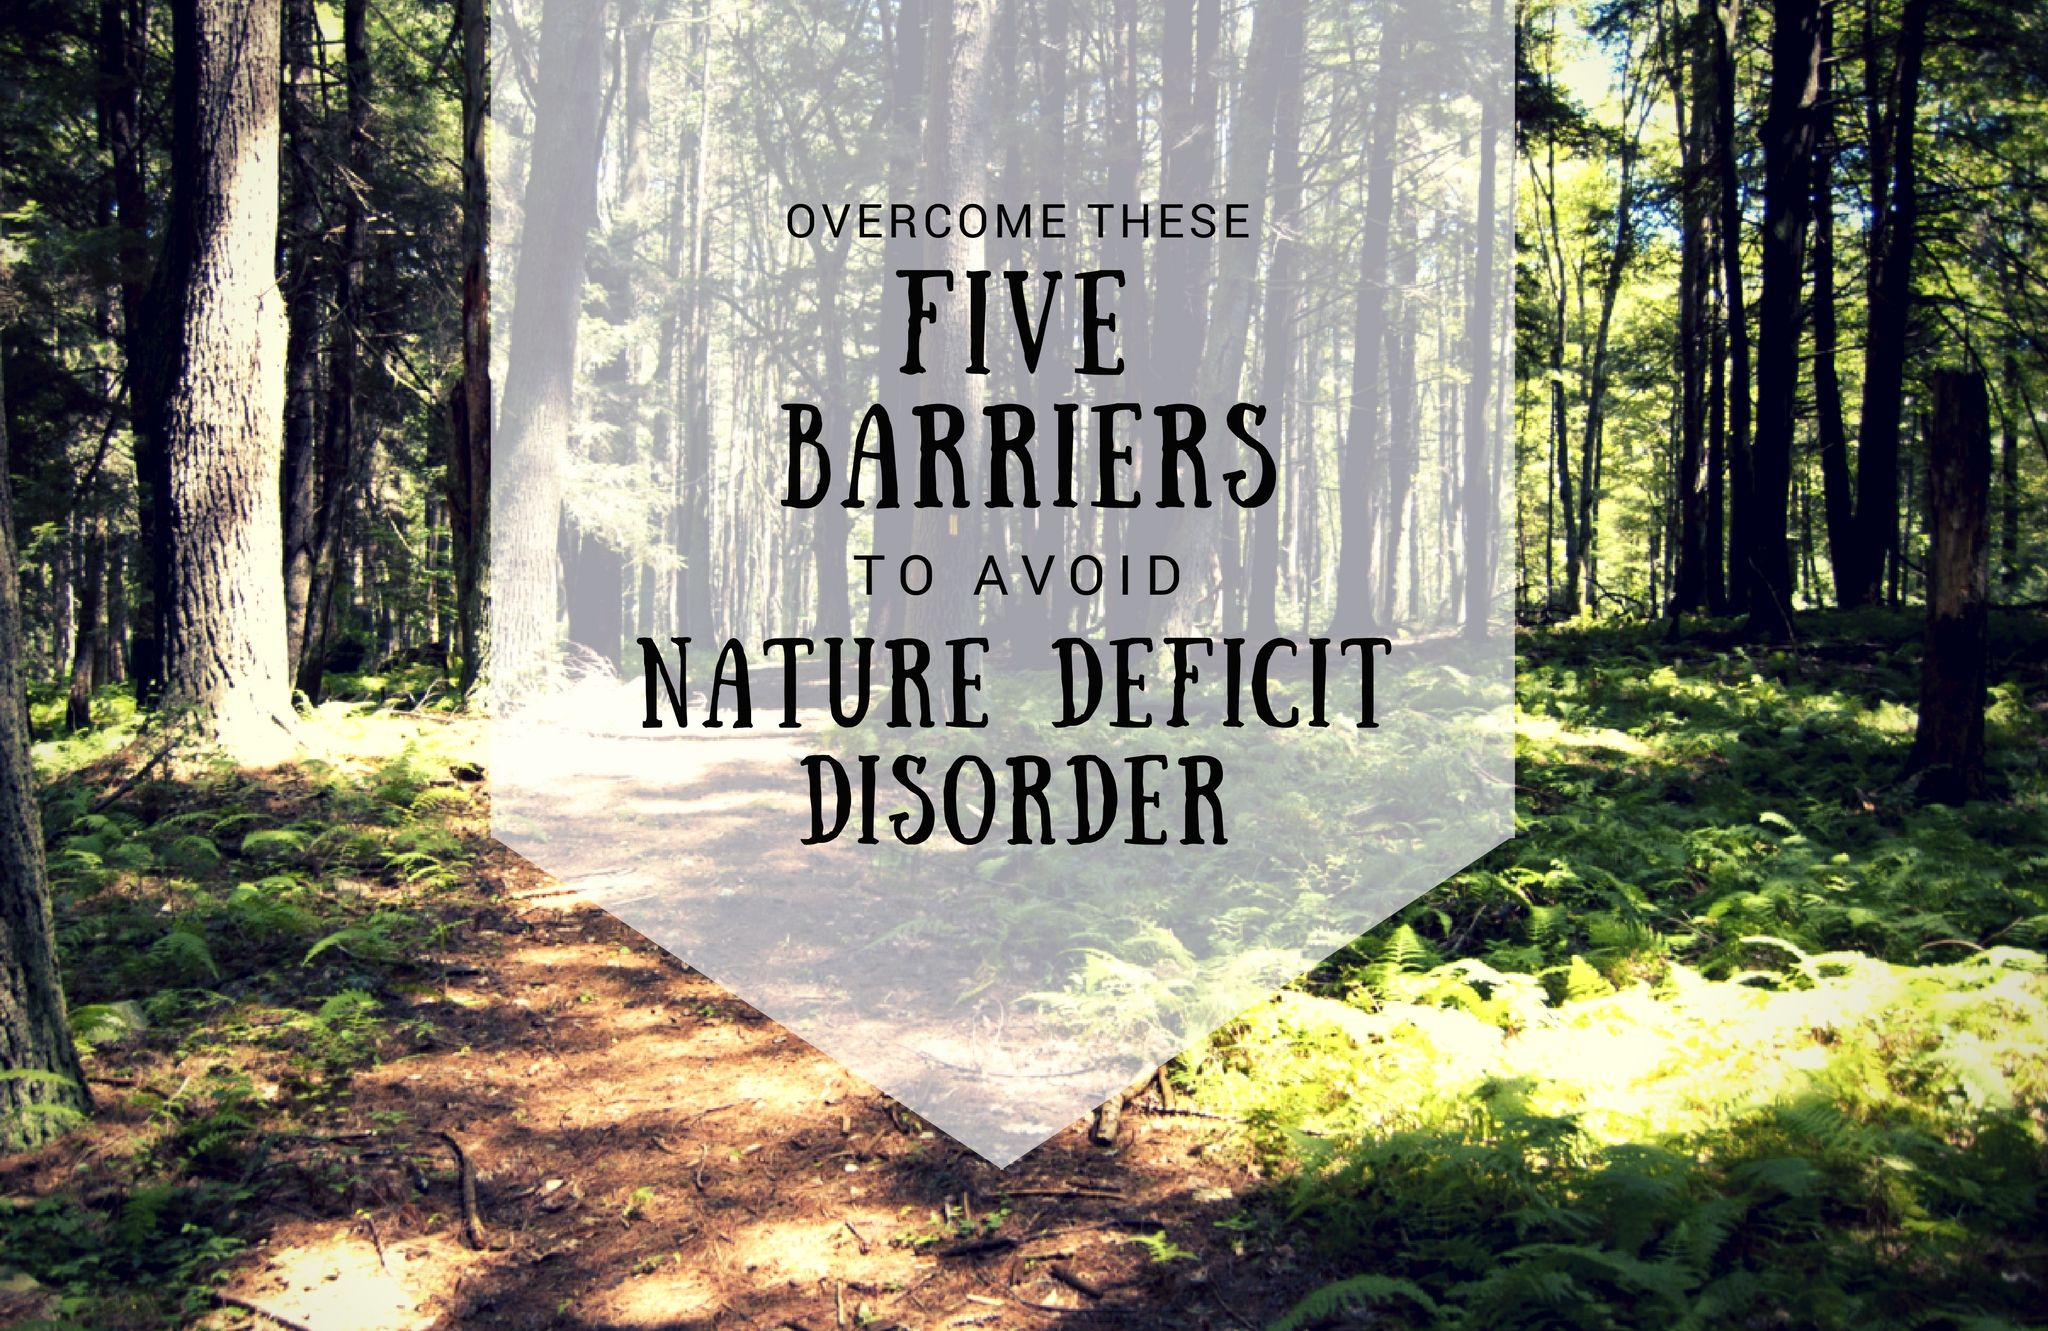 Overcome These Five Barriers To Avoid Nature Deficit Disorder